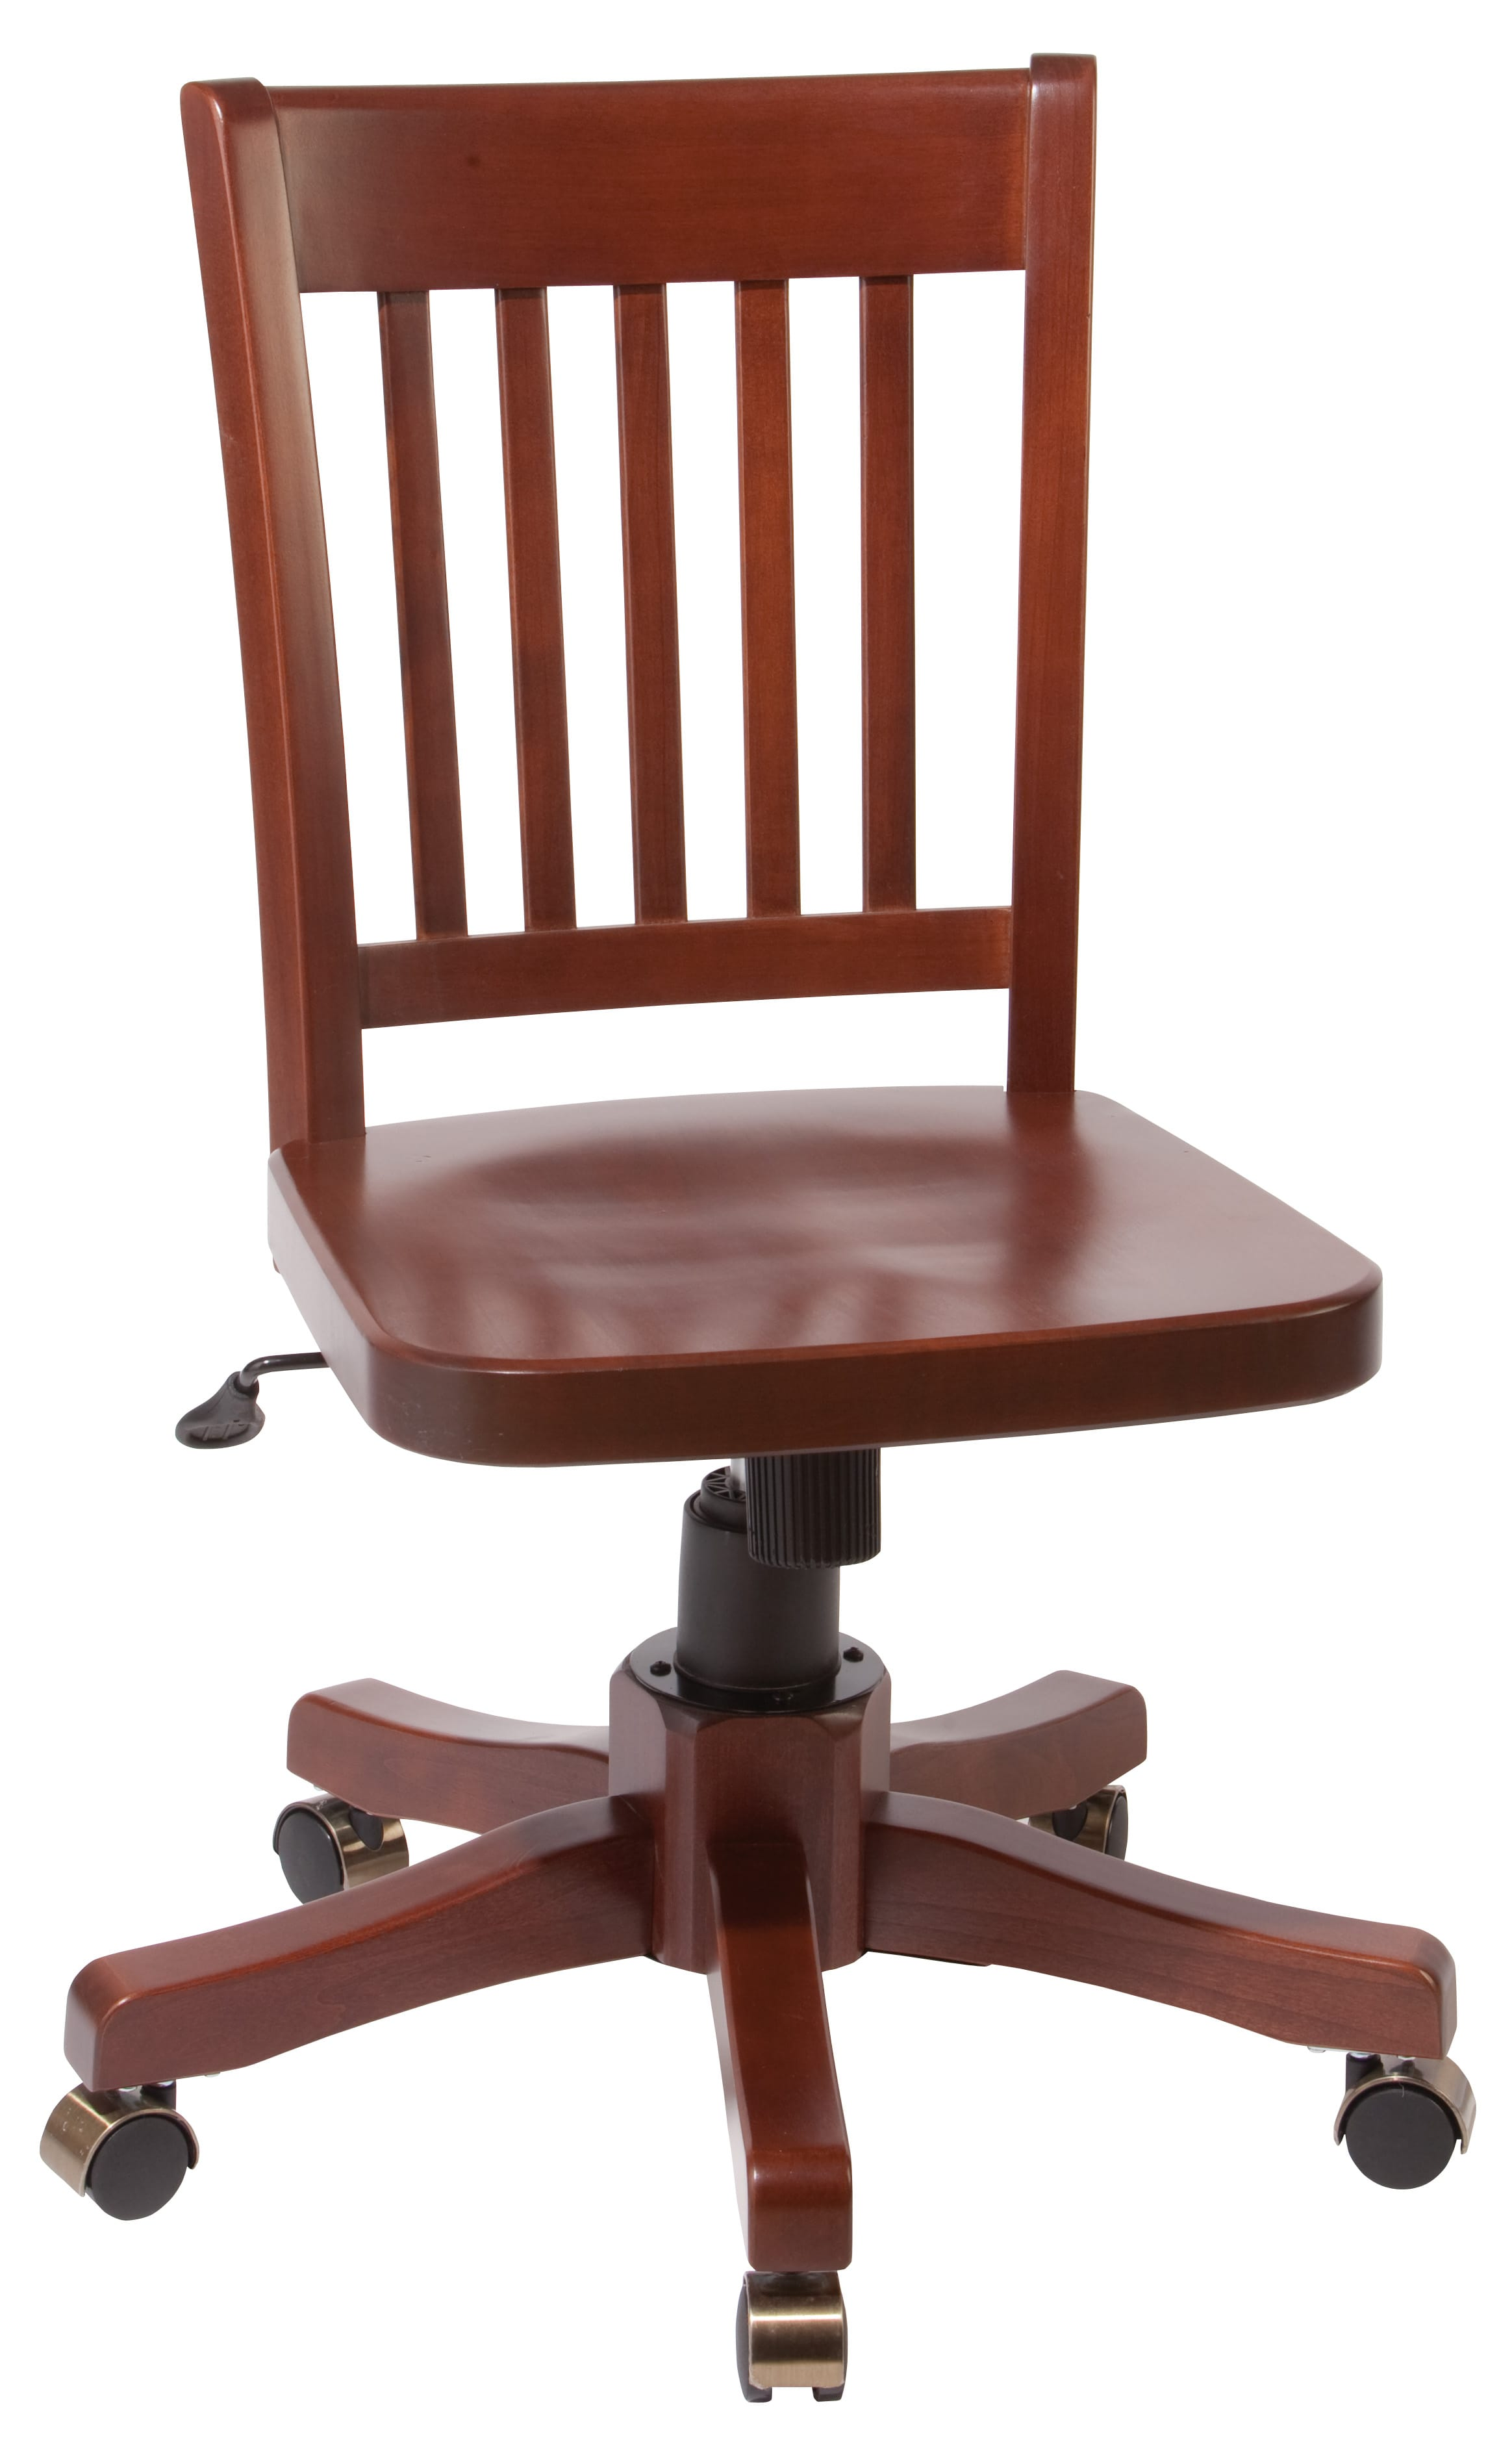 Hawthorne Office Chair Kd Finished Glazed Antique Cherry By Wittier Wood Furniture